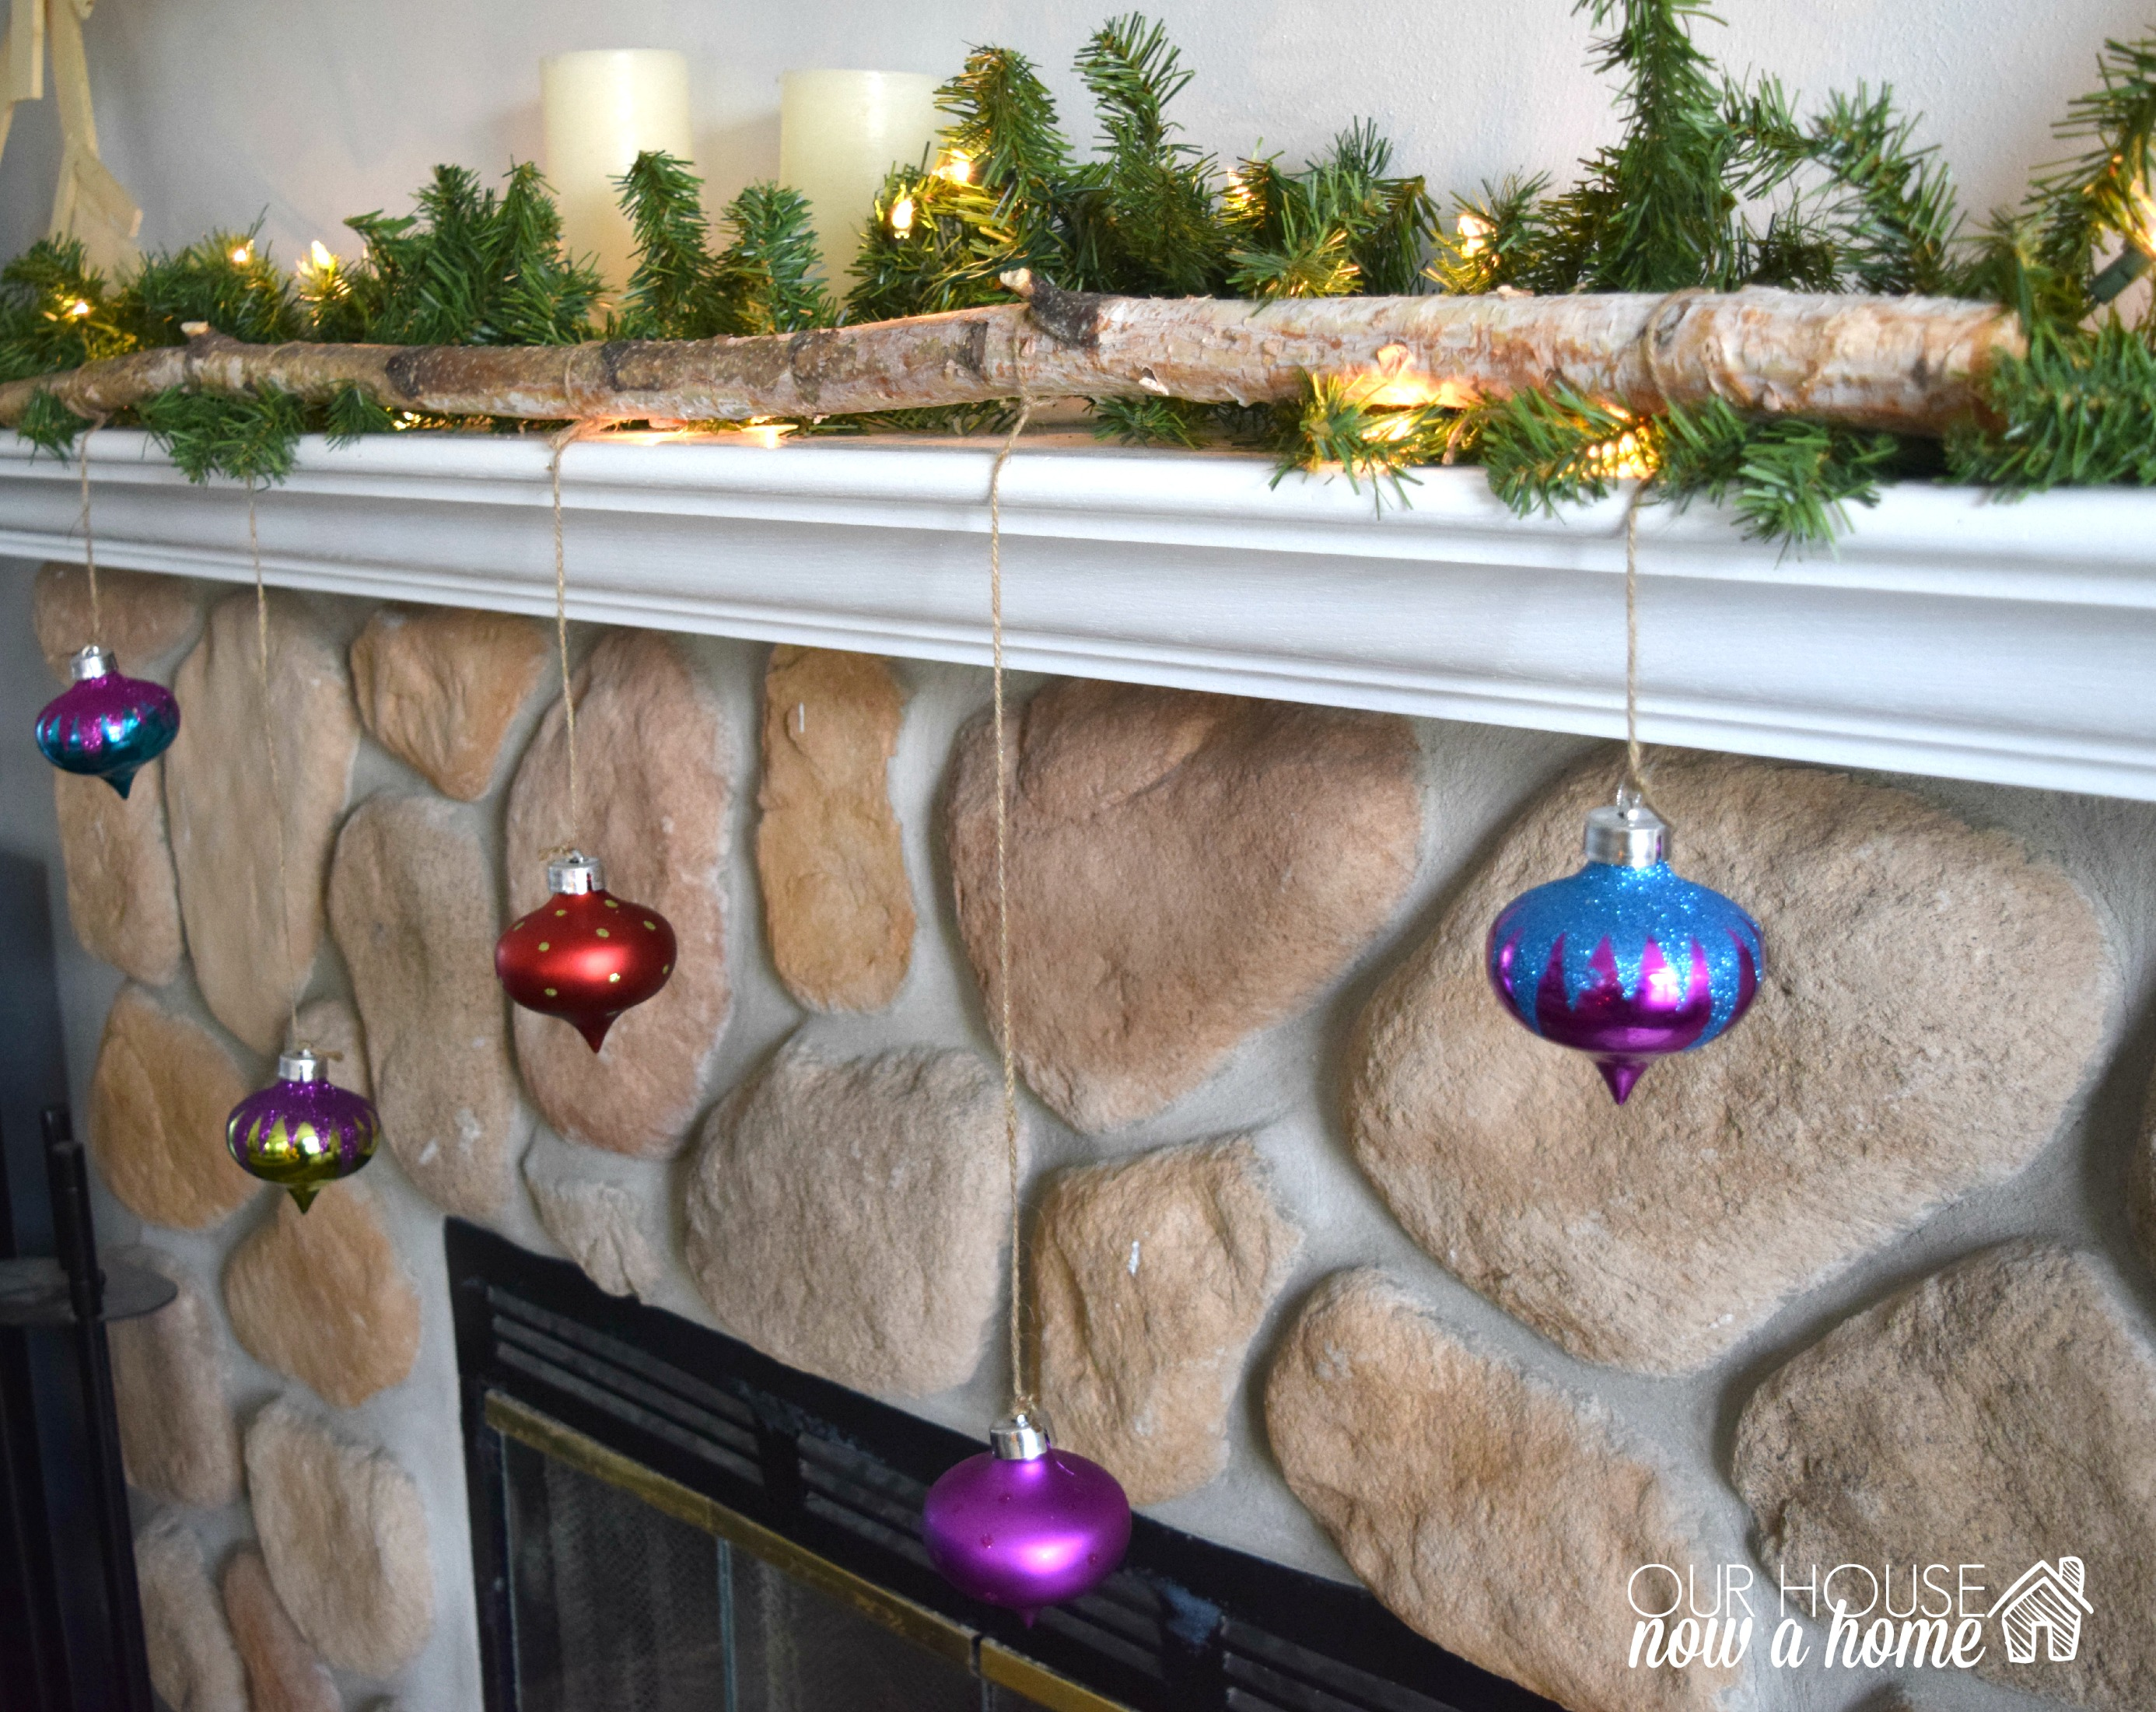 Hanging Christmas Decorations Diy.Diy Hanging Christmas Ornaments Our House Now A Home